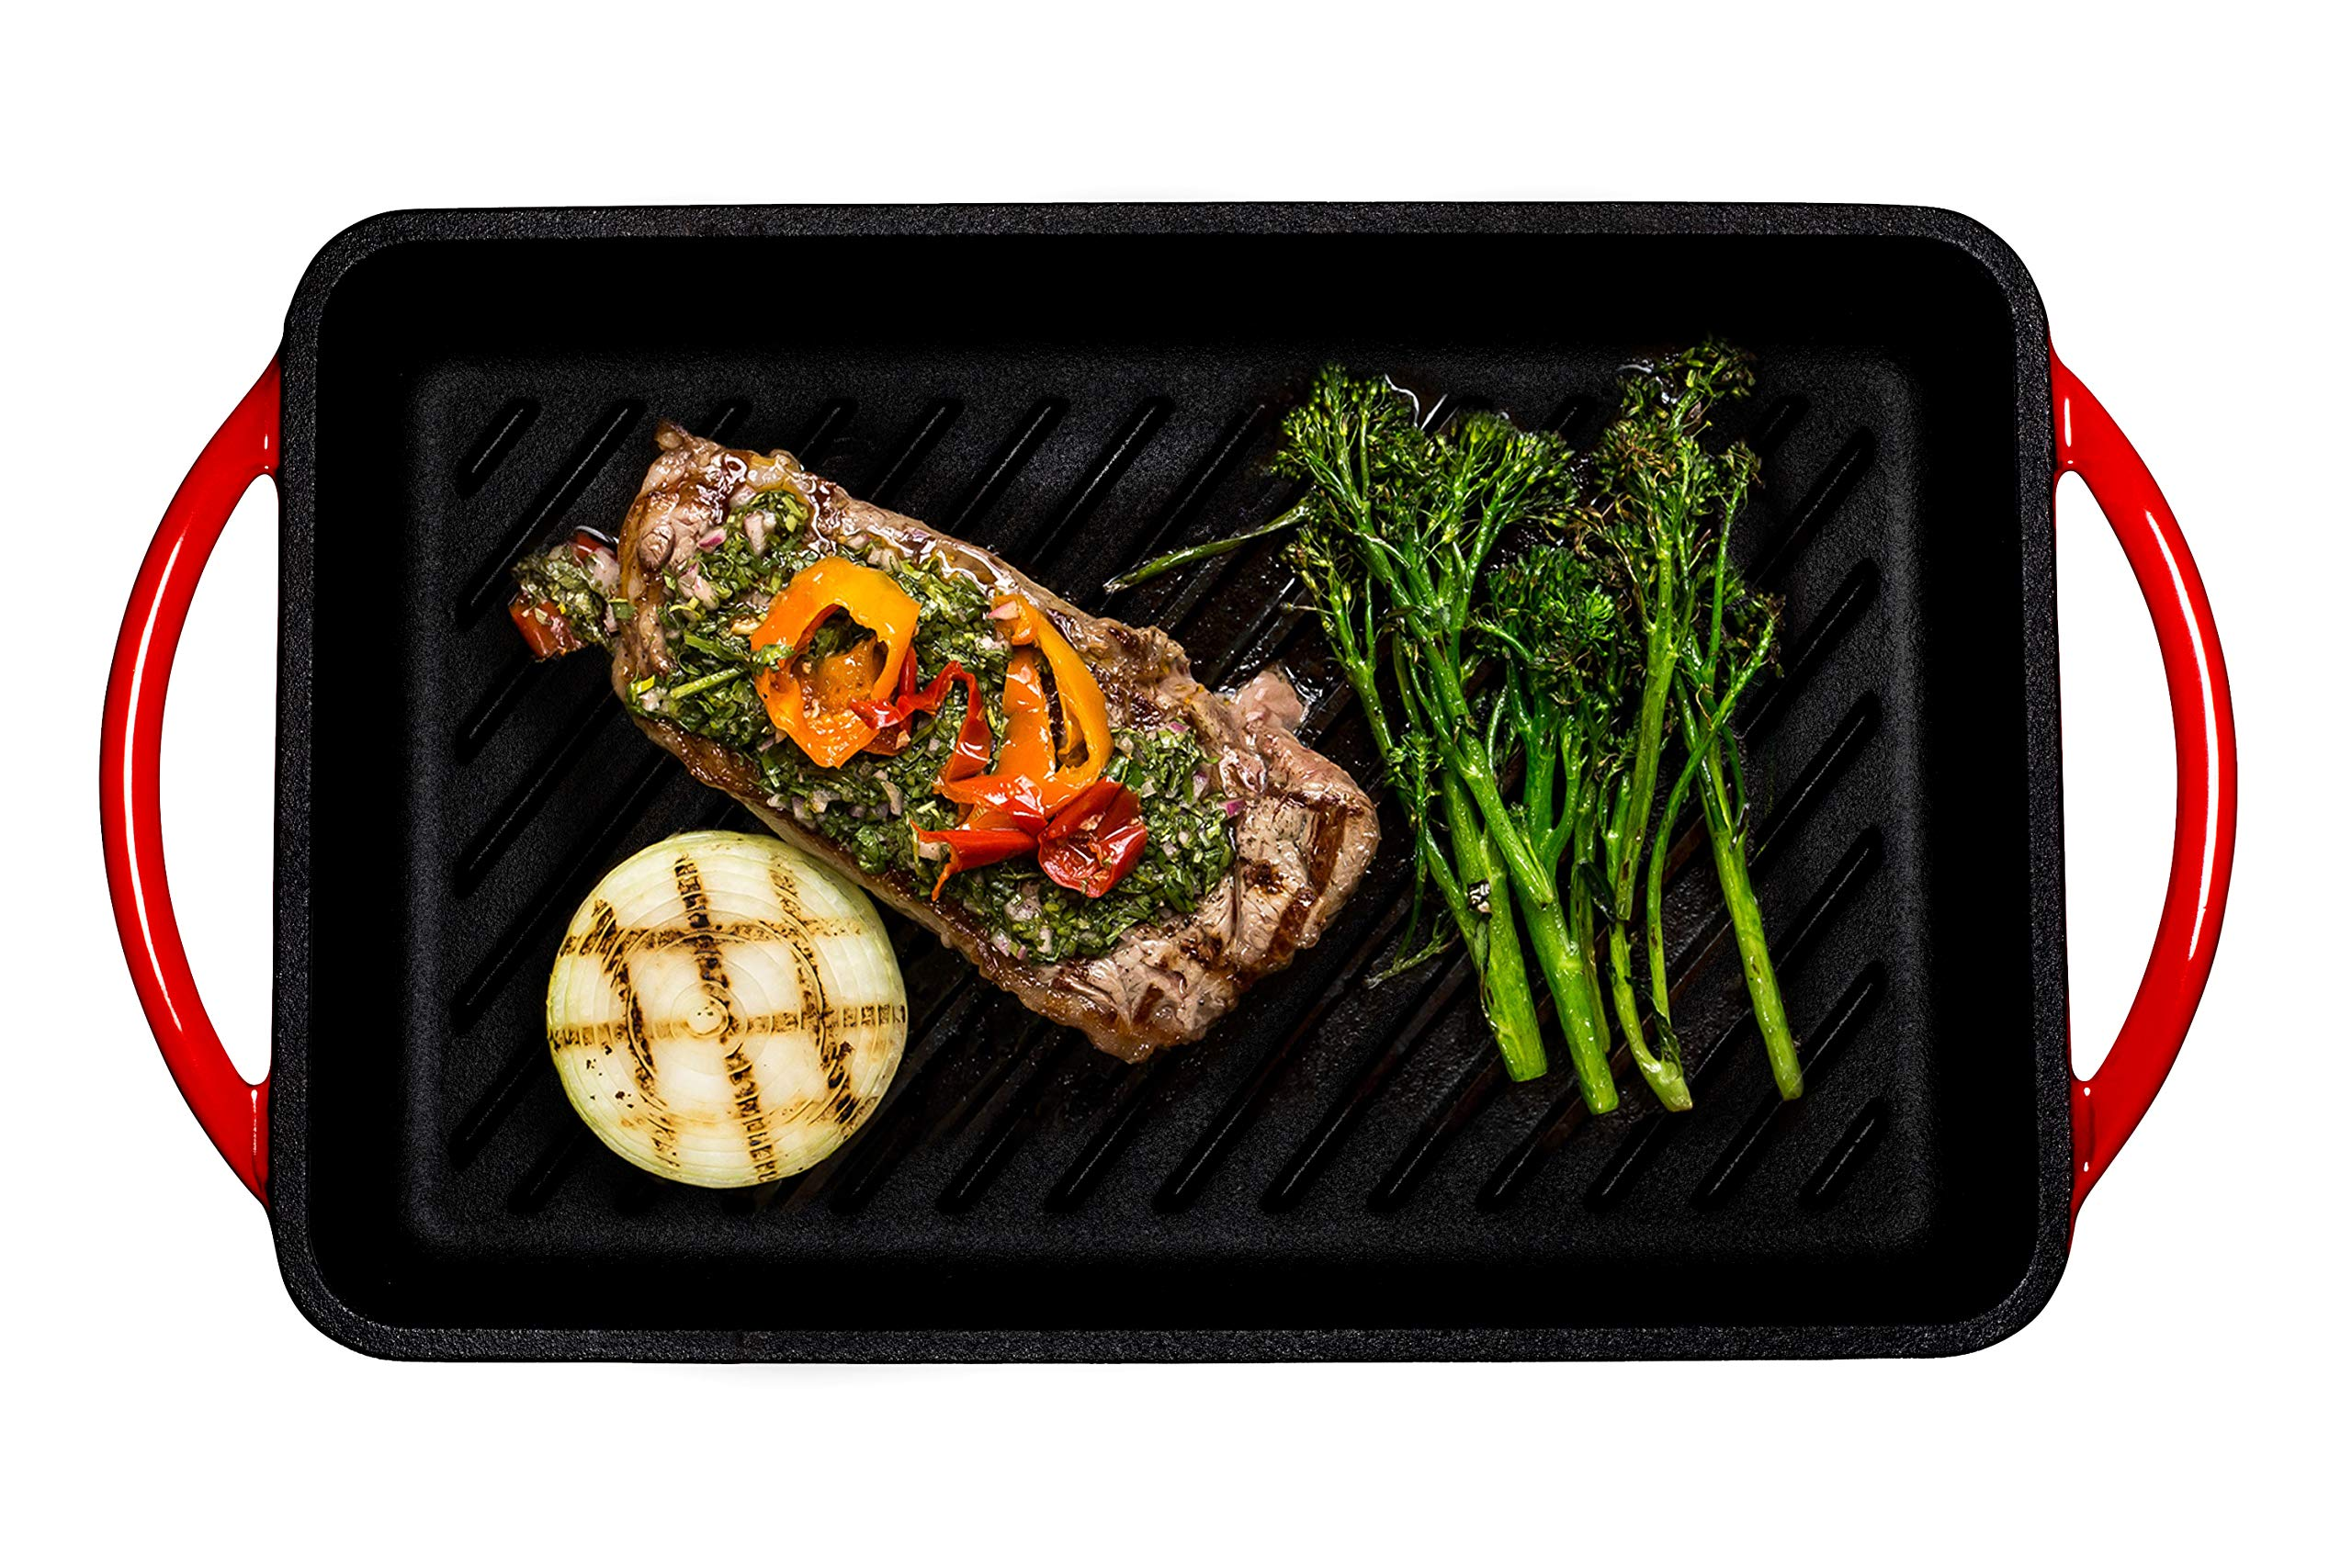 Enameled Cast-Iron Rectangular Grill Pan, Loop Handles, Fire Red, 9.5'' x 13.5'' by Bruntmor (Image #2)